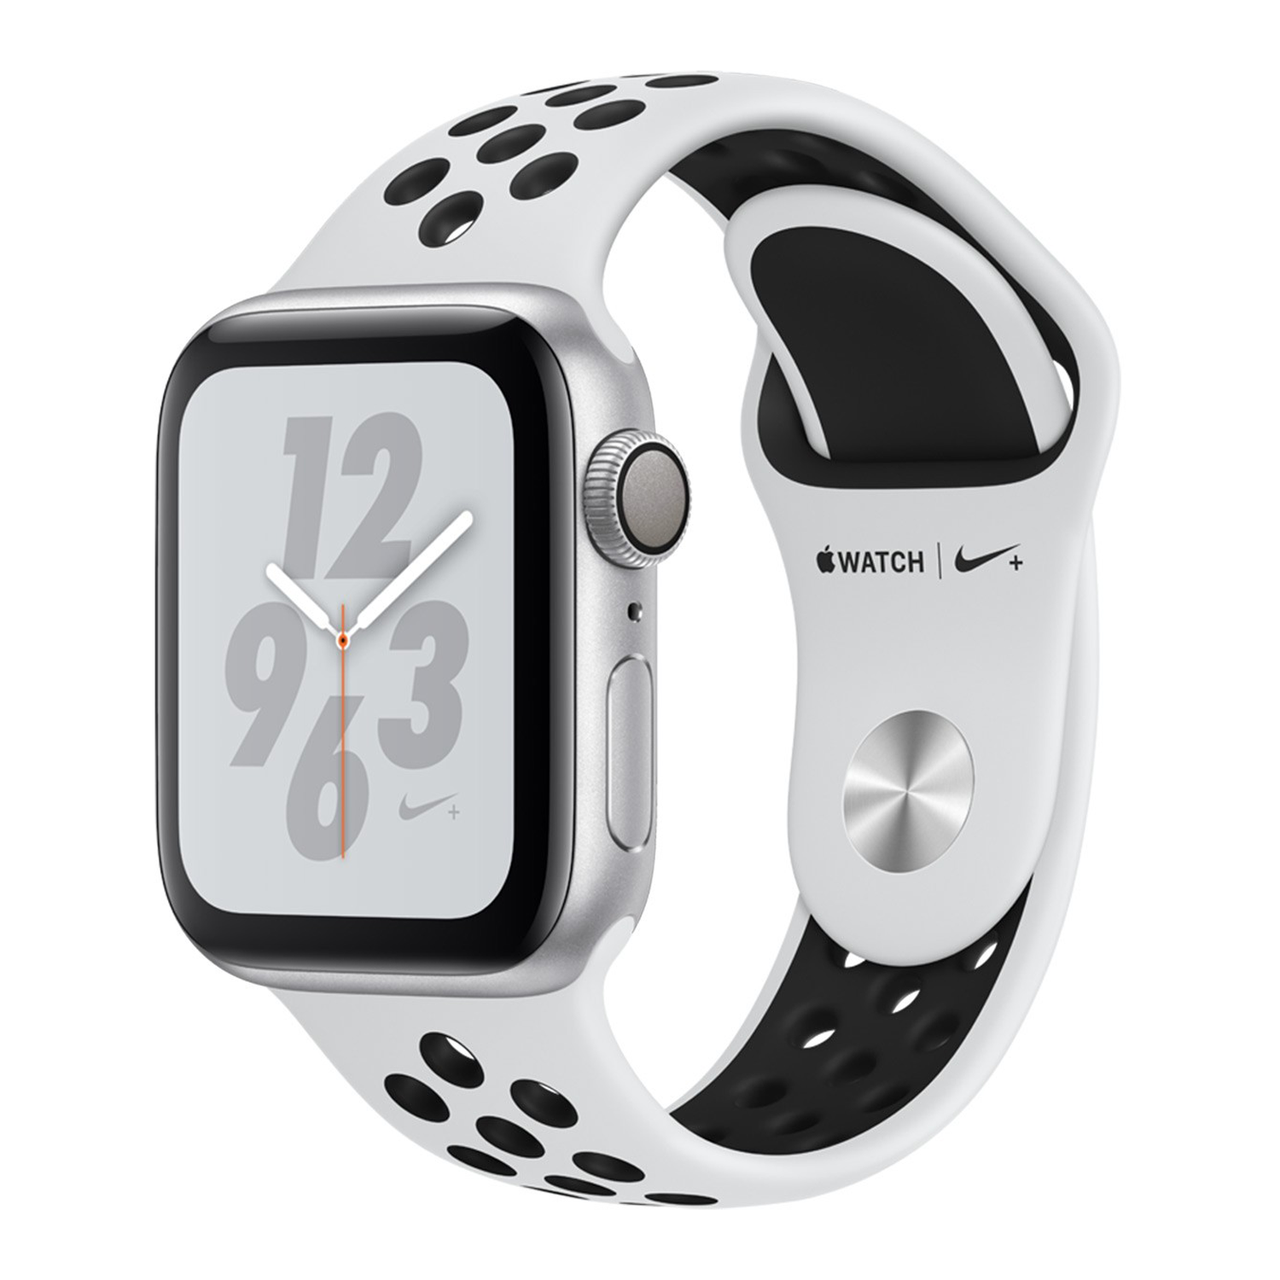 Apple Watch Series 4 Nike+ GPS 40mm Silver Aluminium Case with Platinum/Black Nike Sport Band (MU6H2)